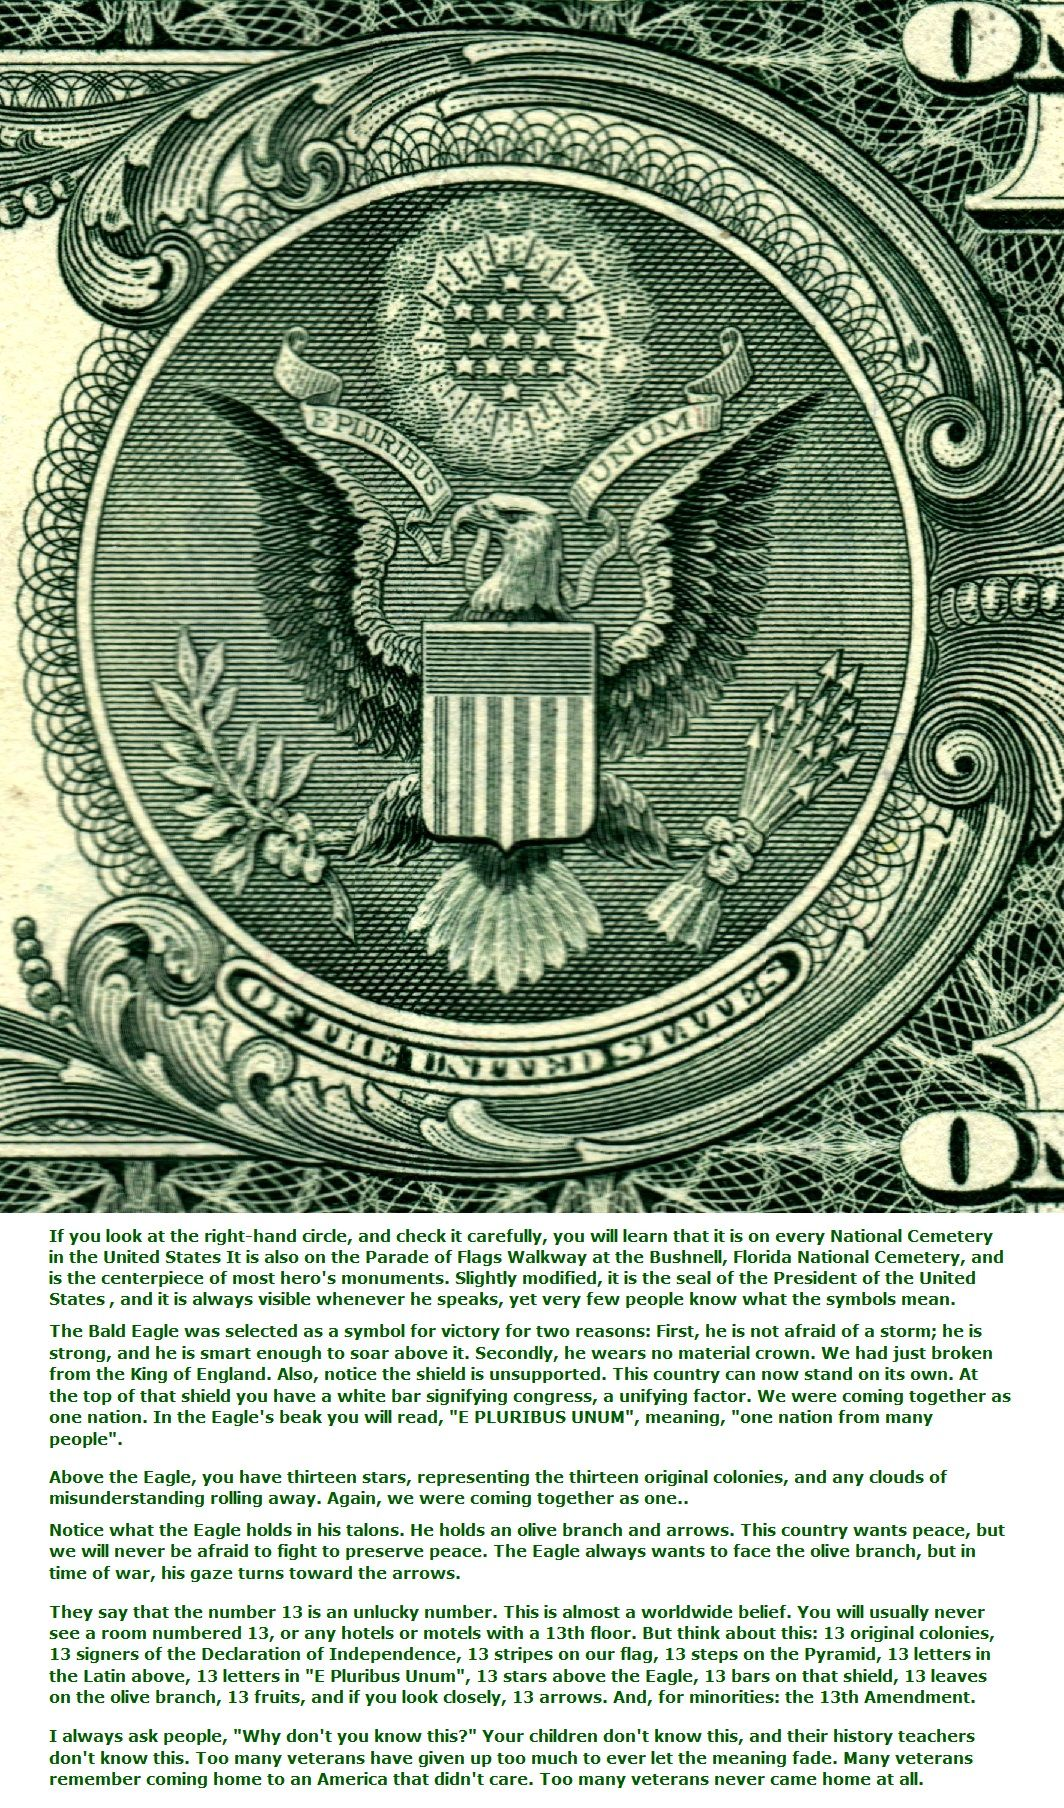 Facts one dollar close up presidential seal and meaning facts one dollar close up presidential seal and meaning uscurrency legaltender biocorpaavc Images